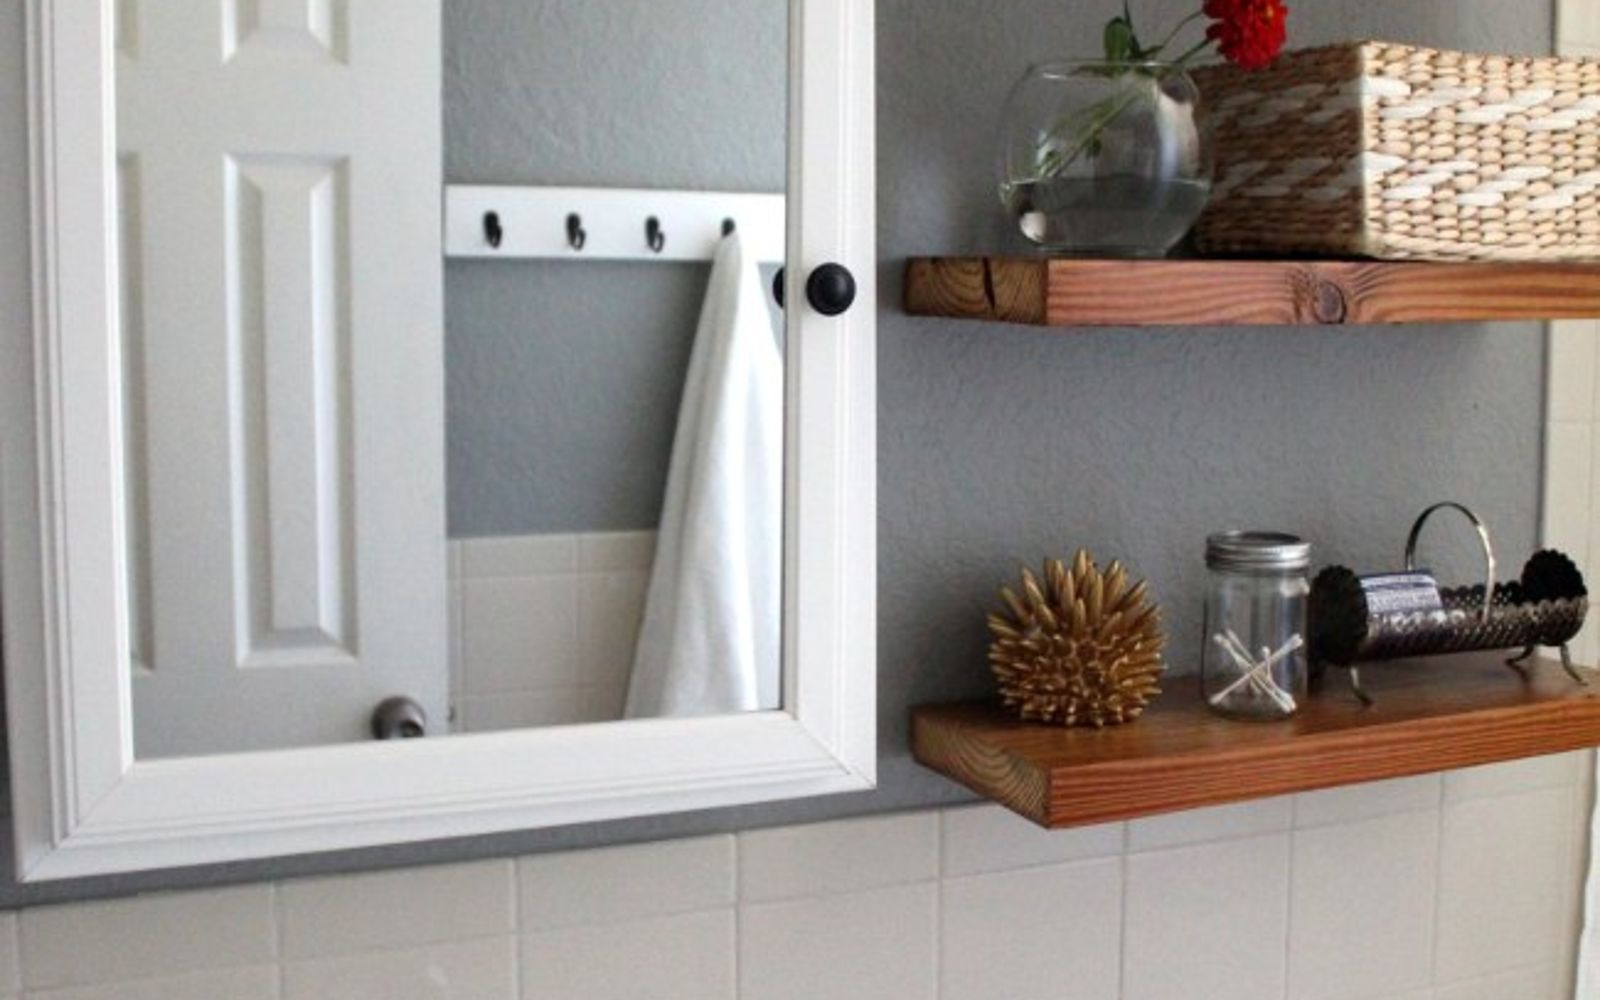 s 11 actually helpful tricks for decorating a small bathroom, bathroom ideas, Use pretty storage that doubles as decor